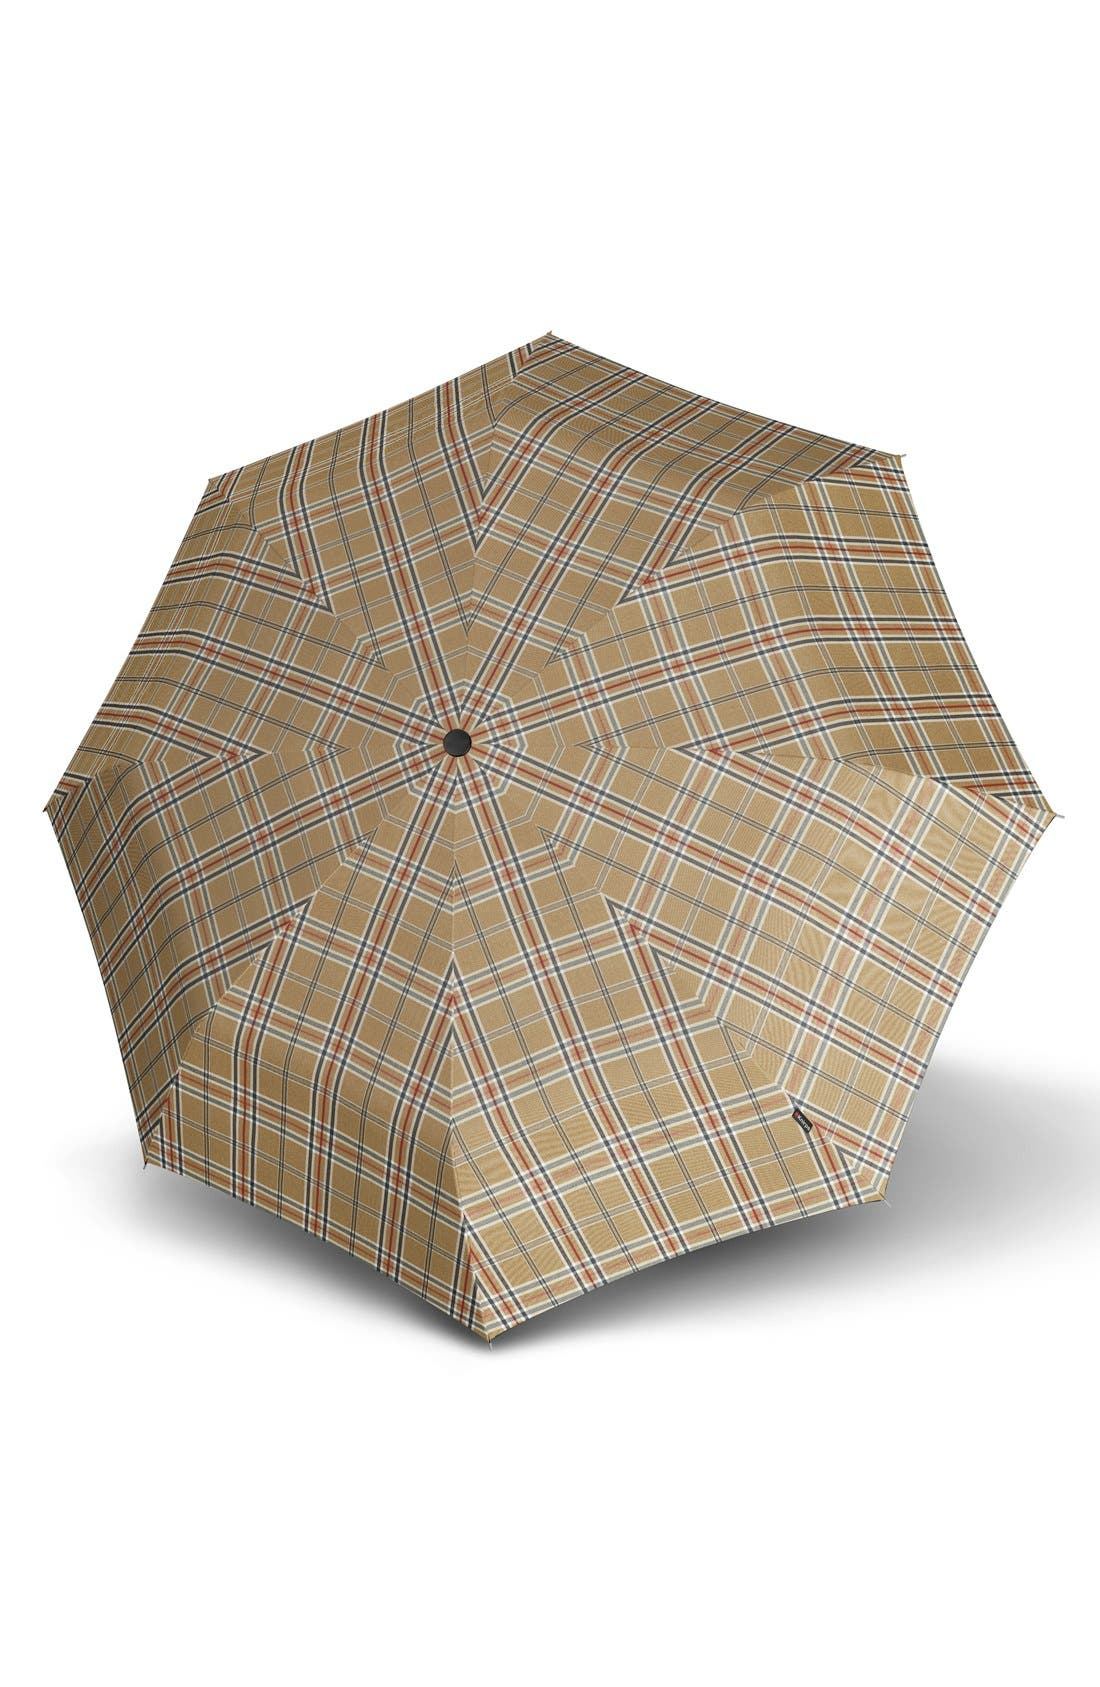 Knirps 'T2 Duomatic' Umbrella